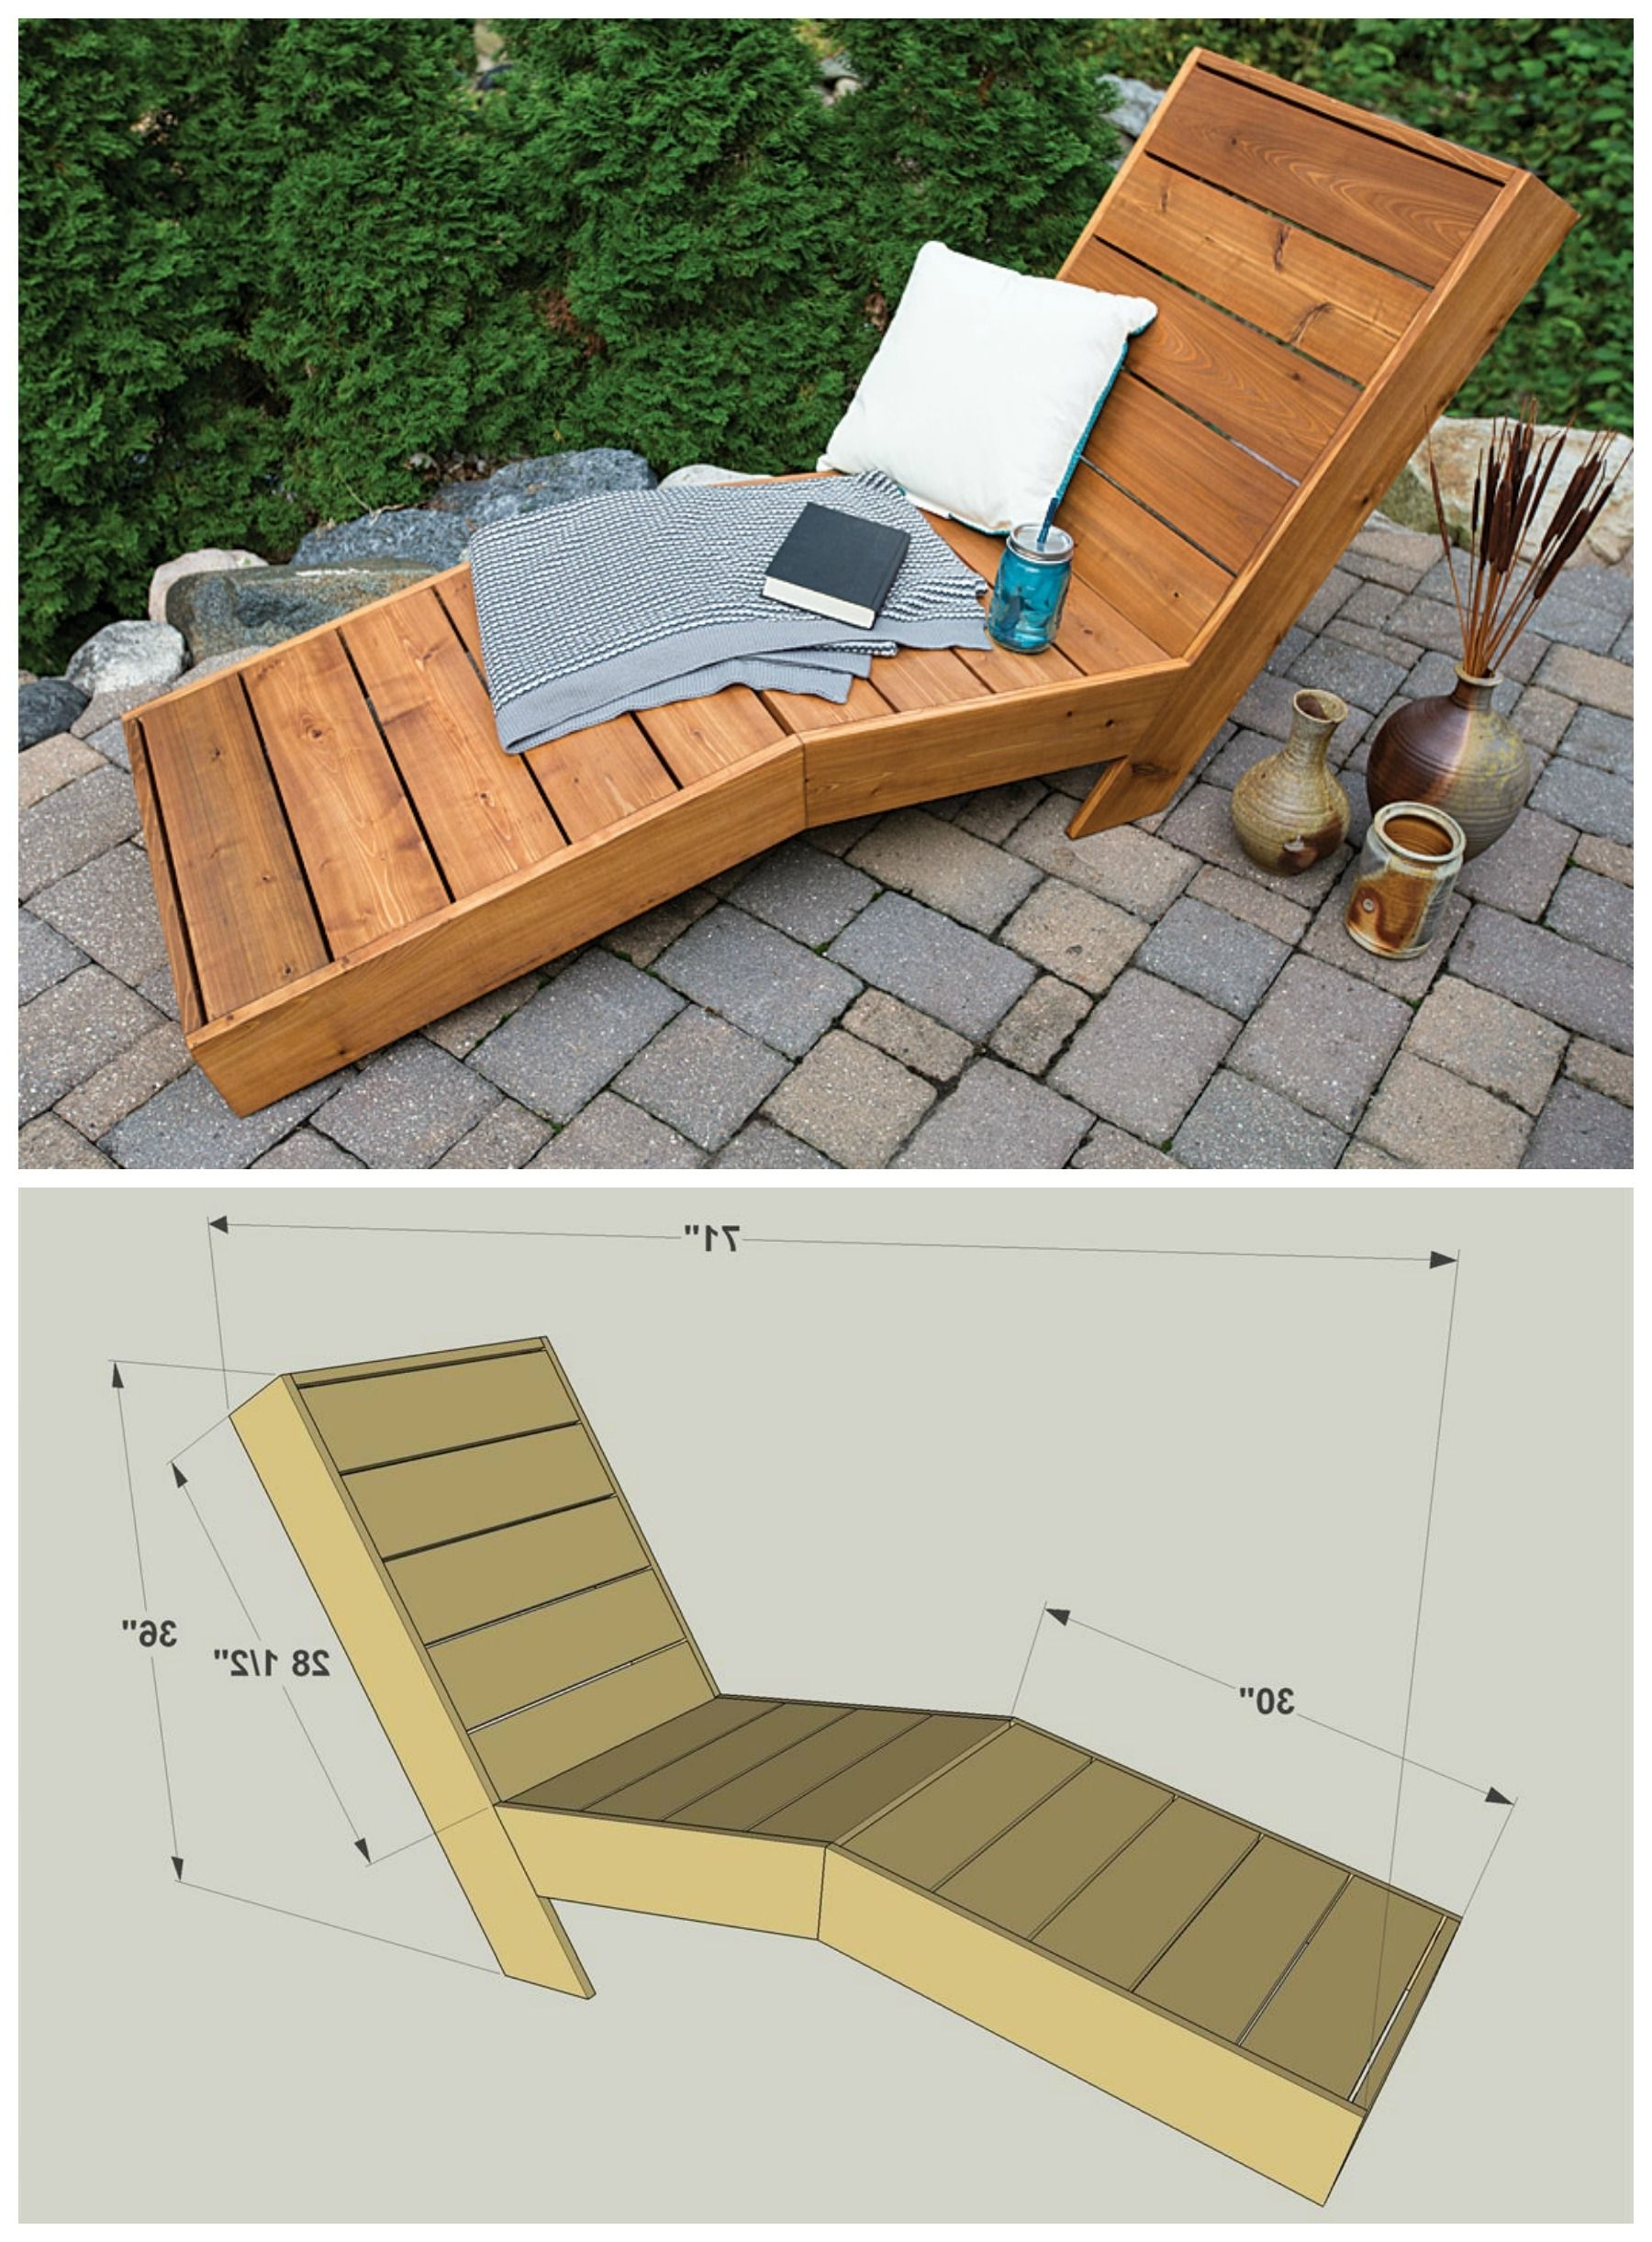 Diy Chaise Lounges Within Popular Diy Outdoor Chaise Lounge :: Free Plans At Buildsomething (View 4 of 15)